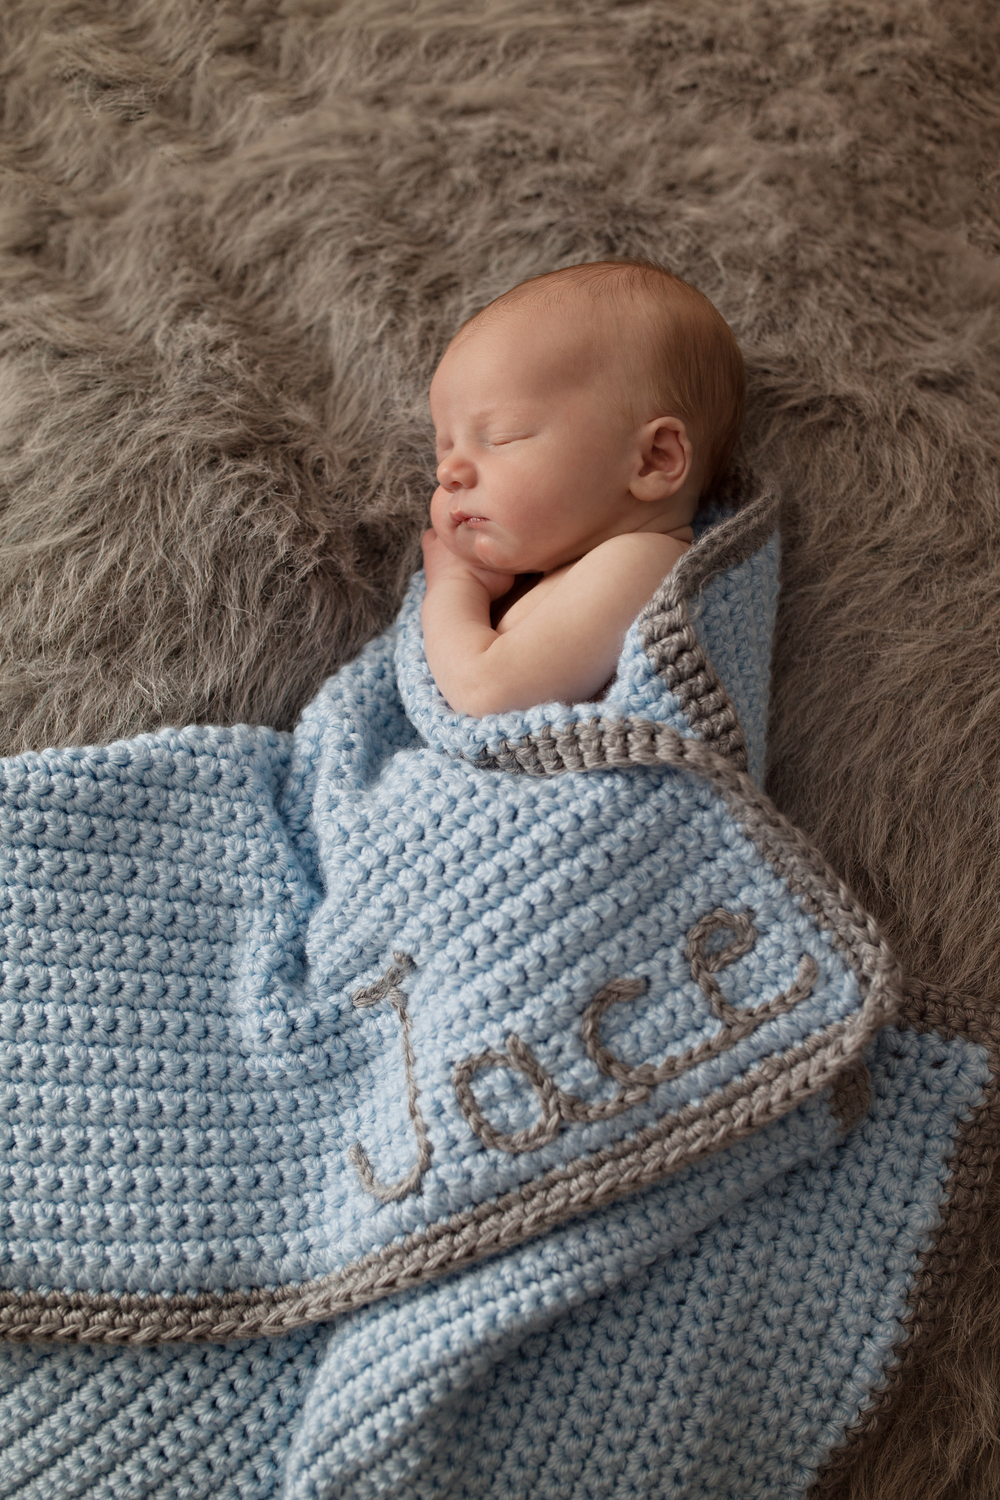 Columbus Ohio professional portrait photographer.  Newborn baby photography.  Hand made crochet blanket for infant.